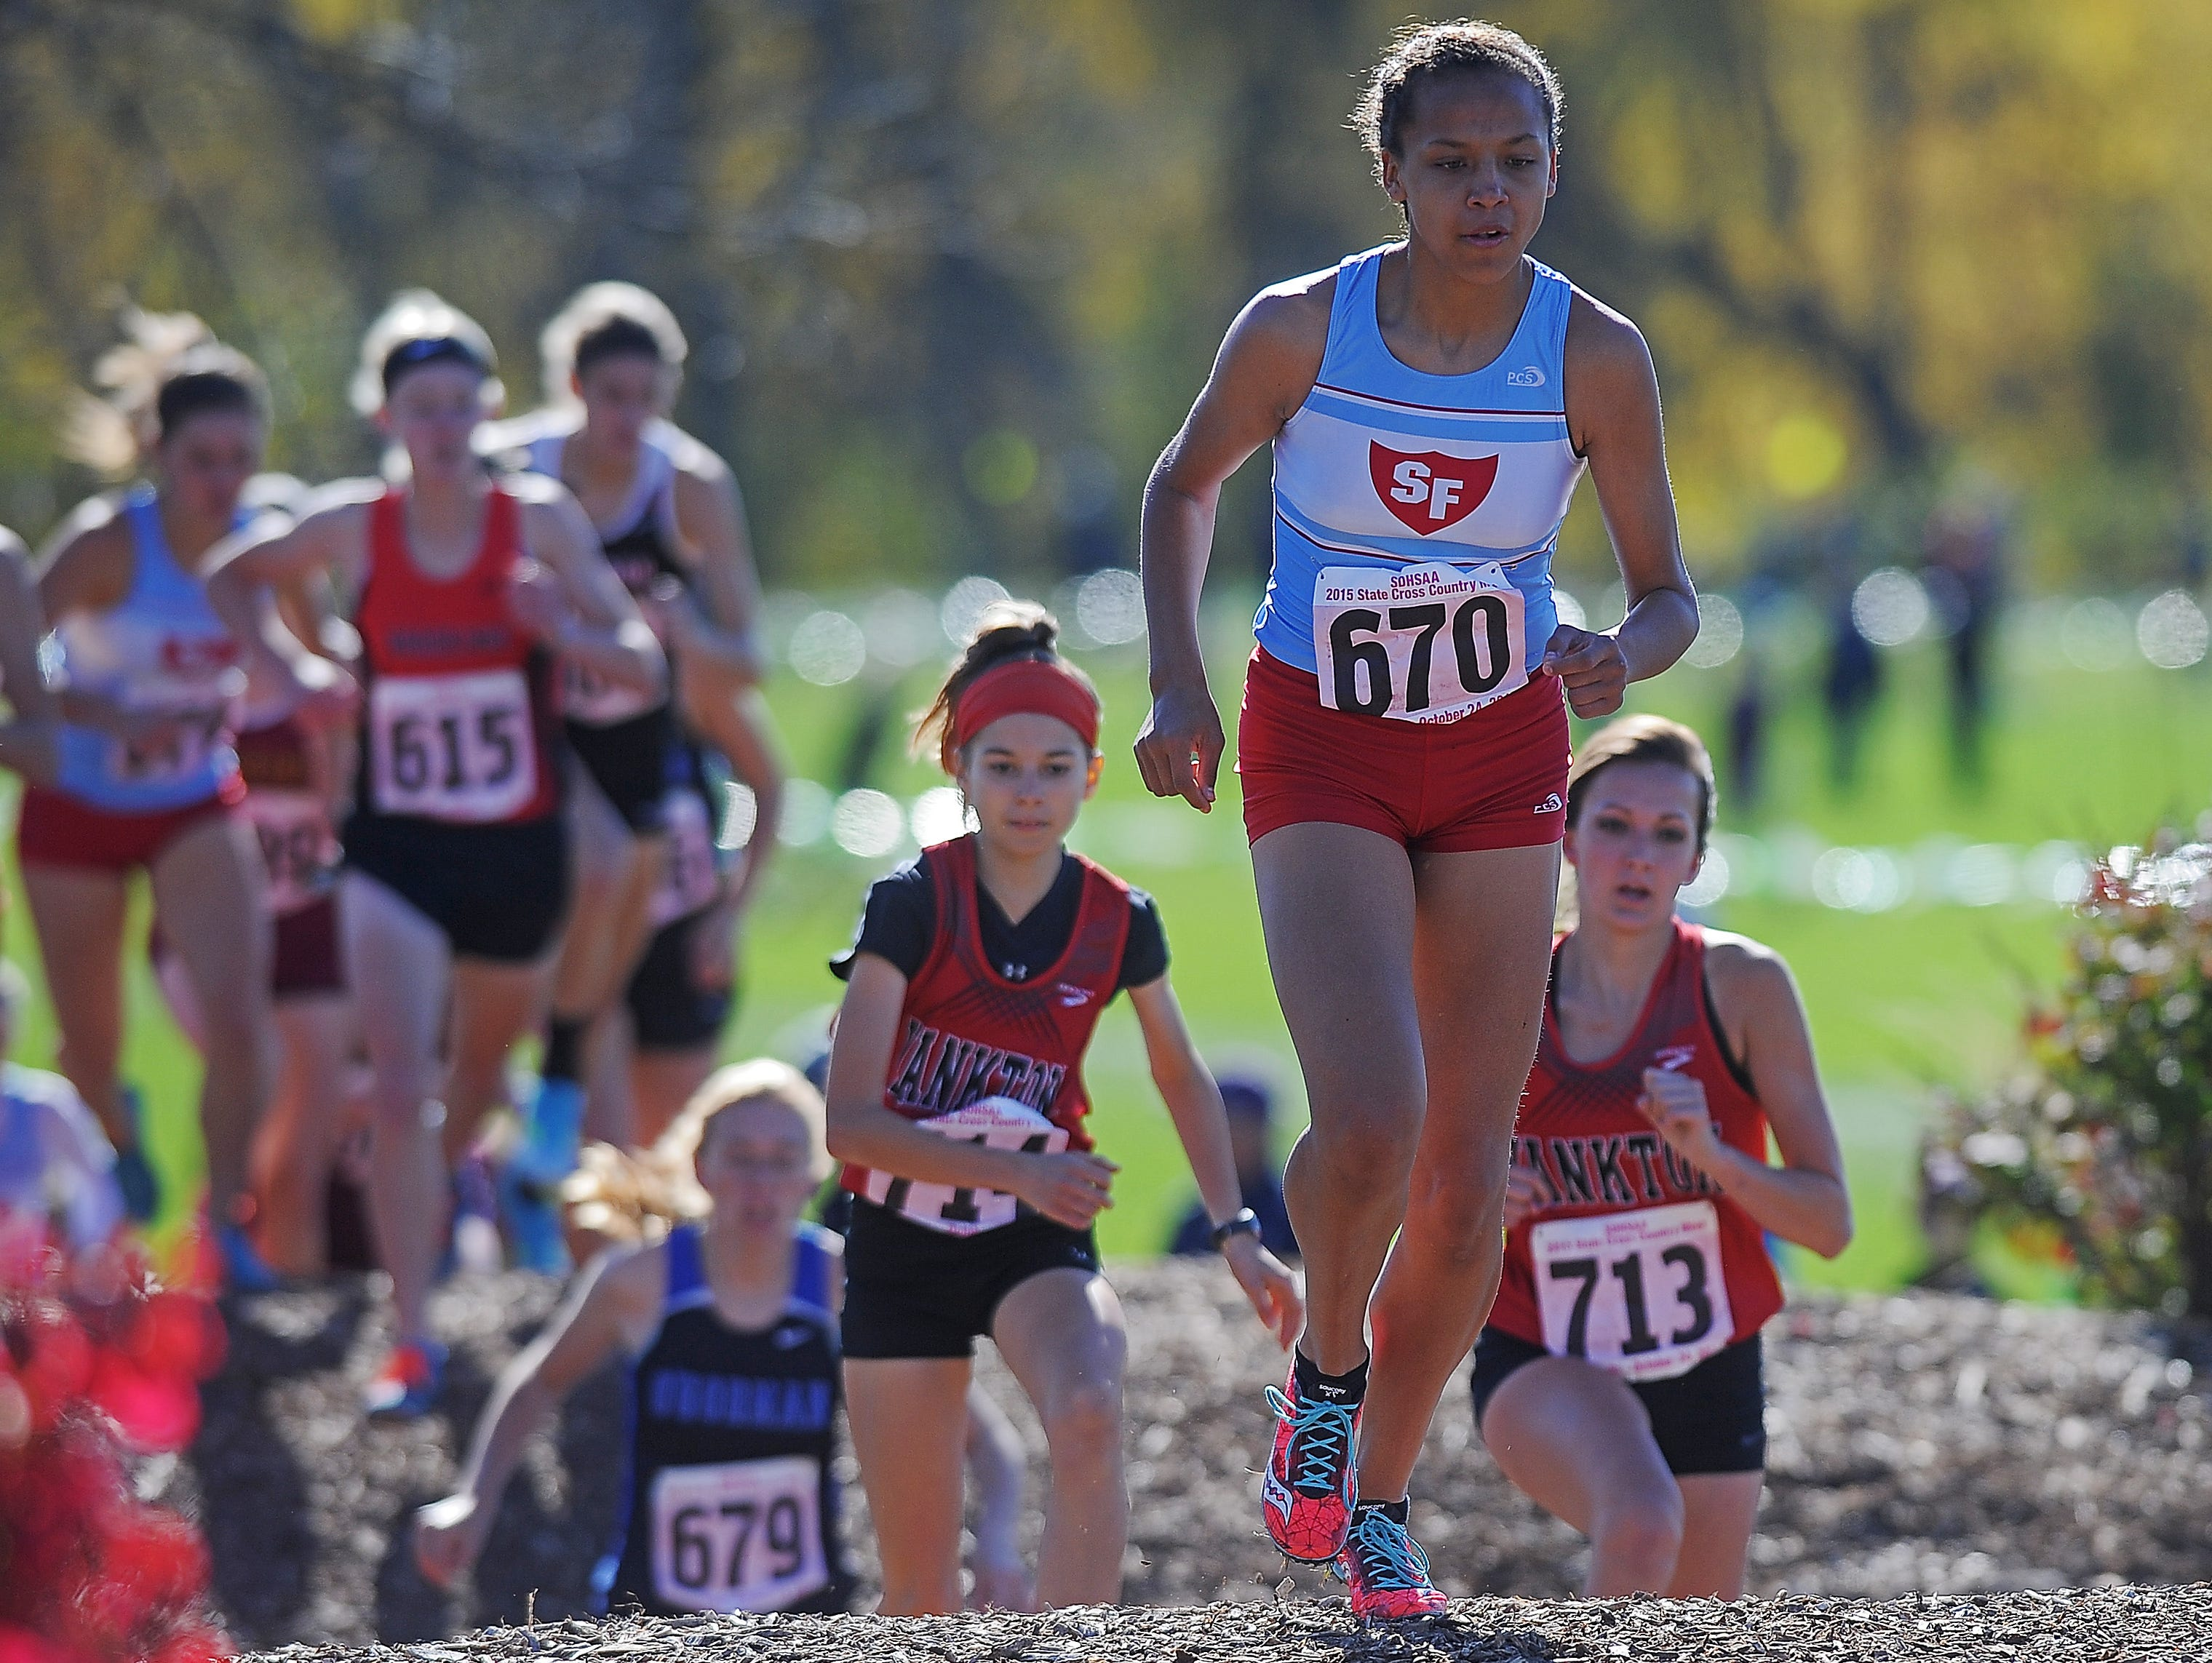 Lincoln's Jasmyne Cooper (670) runs in the girls Class AA race during the state cross country meet Saturday at Yankton Trail Park. Cooper finished ninth and Lincoln won the team title.